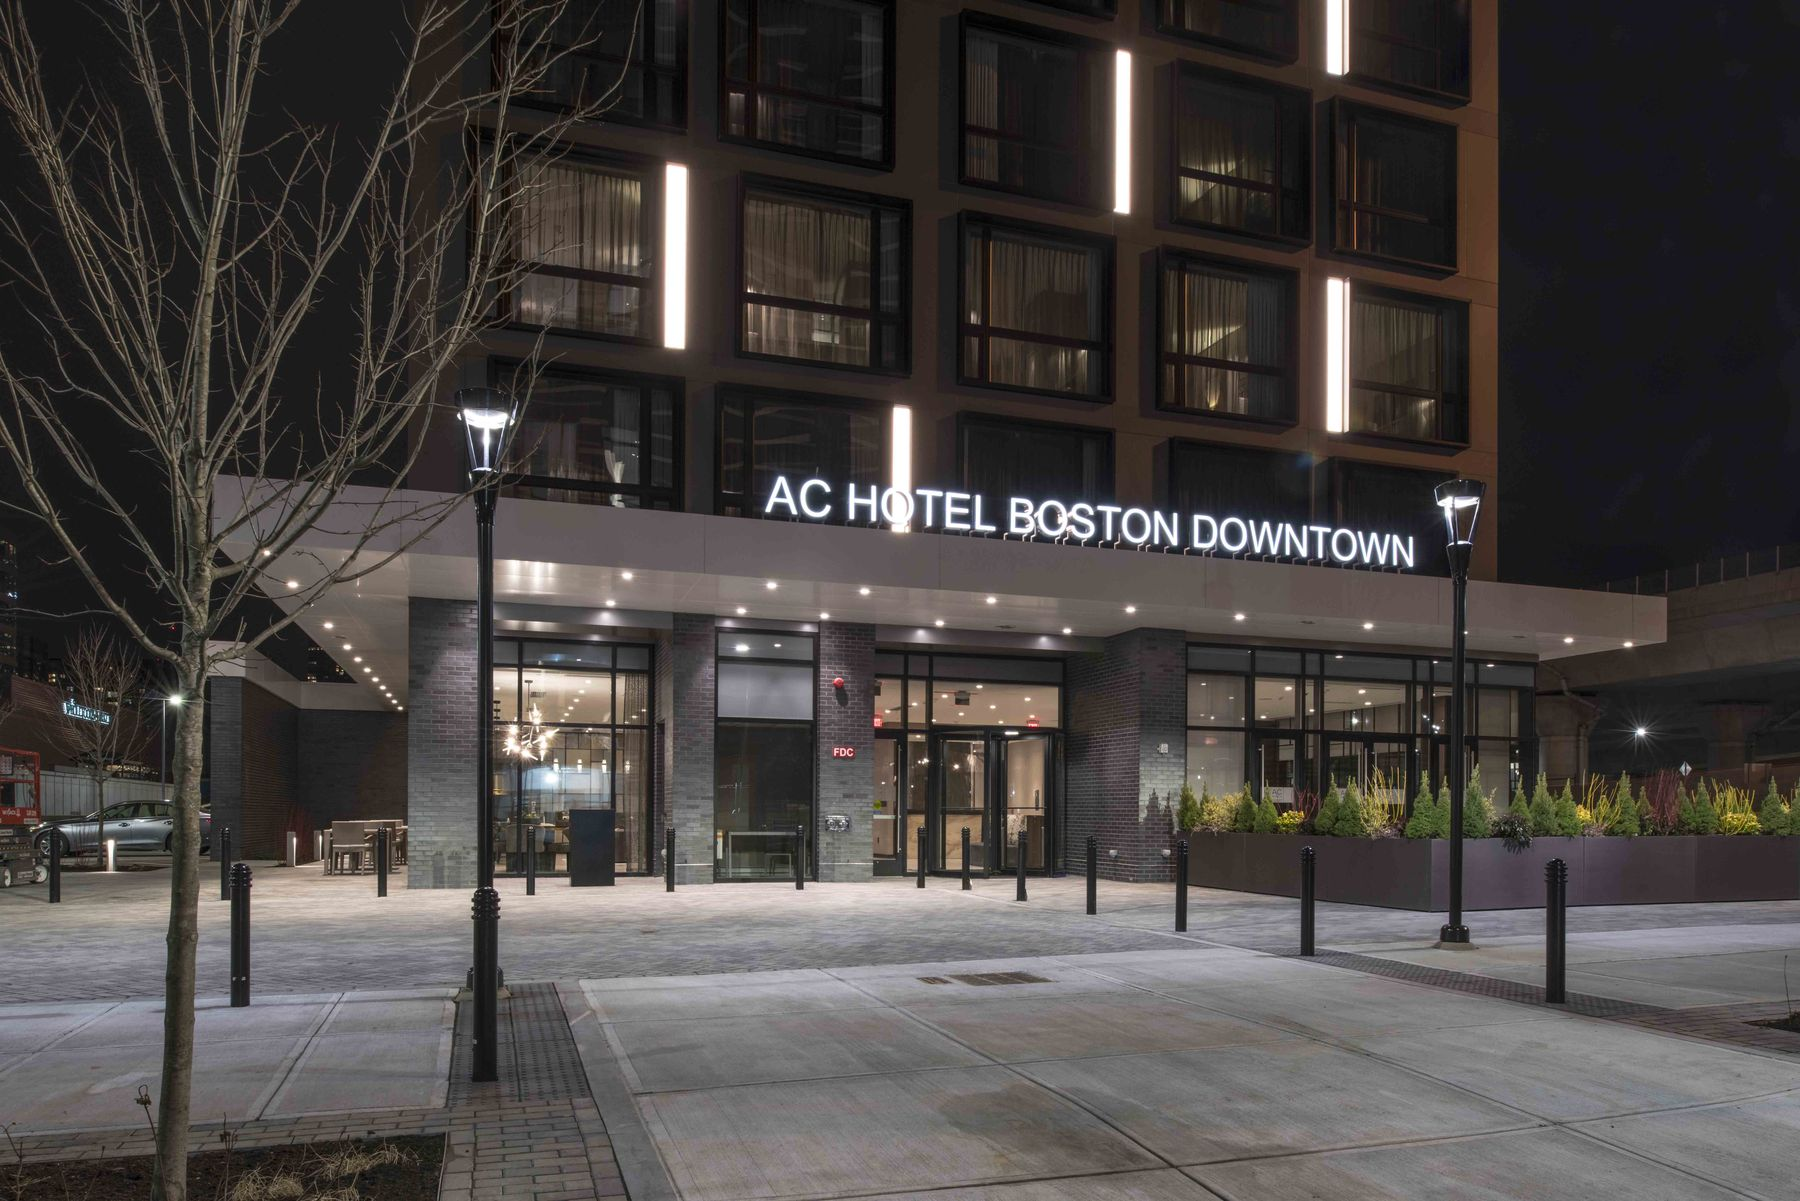 AC Hotel Boston Downtown exterior at night